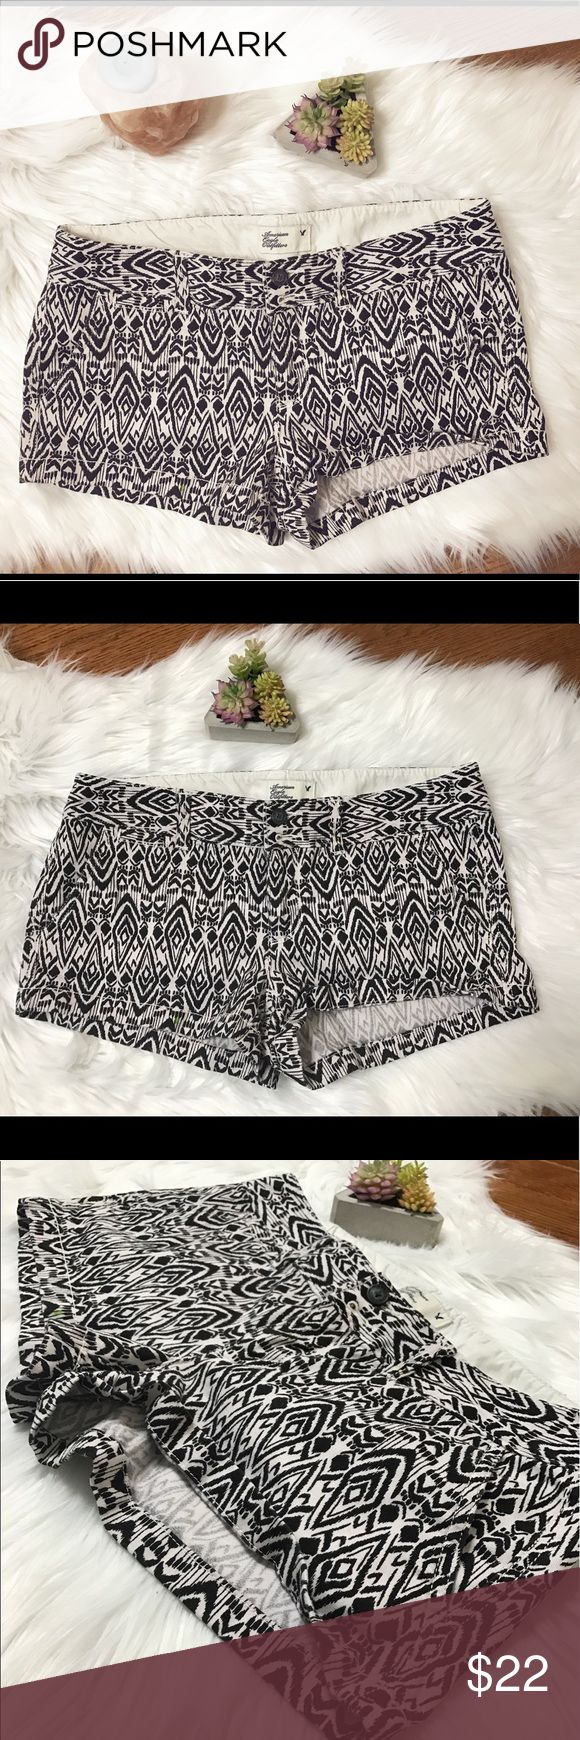 American Eagle Outfitters Boho Print Shorts These black & white Boho tribal shorts are super cute and fun for summer! They are stretchy and comfortable. They are very short. I painted in these shorts so I showed in 2 pictures where there are 2 green dots from the paint. They are barely noticeable. These are gently worn. Size 4. American Eagle Outfitters Shorts Jean Shorts